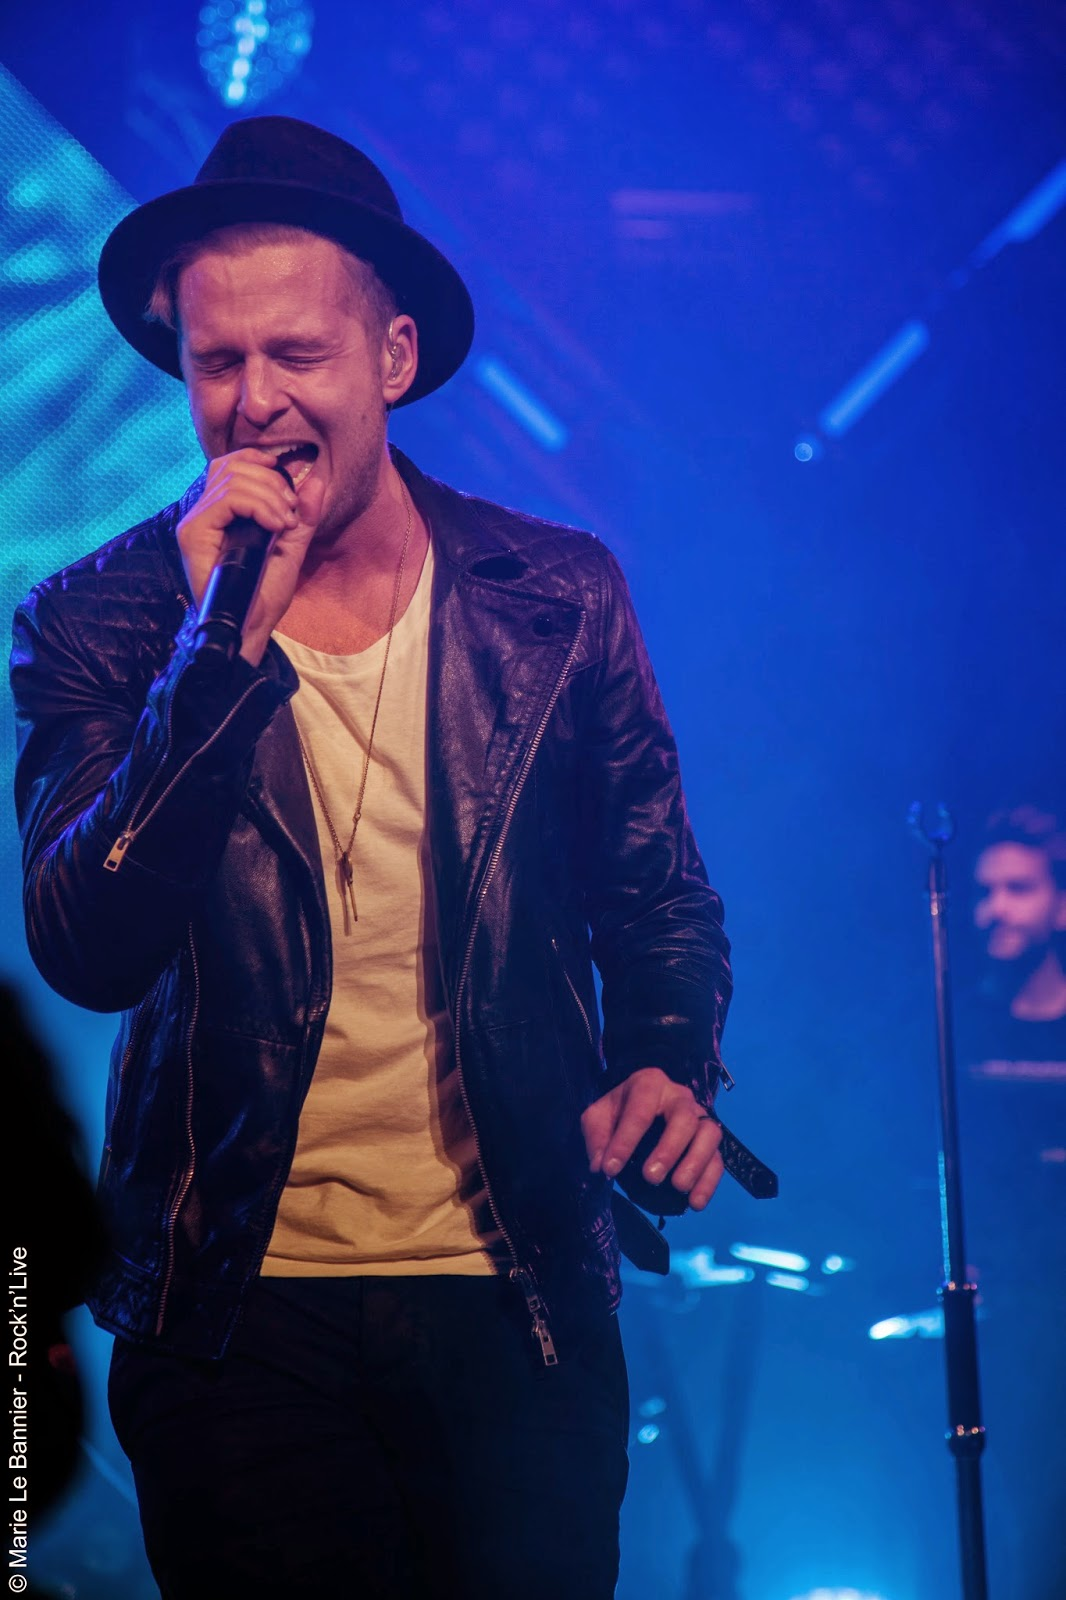 OneRepublic Trianon Paris 2014 Rock'n'Live Live Report Concert Pop Marie Le Bannier Ryan Tedder Zach Filkins Eddie Fisher Brent Kutzle Drew Brown Native Apologize Stop and Stare All the Right Moves Good Life If I Lose Myself Counting Stars Something I Need